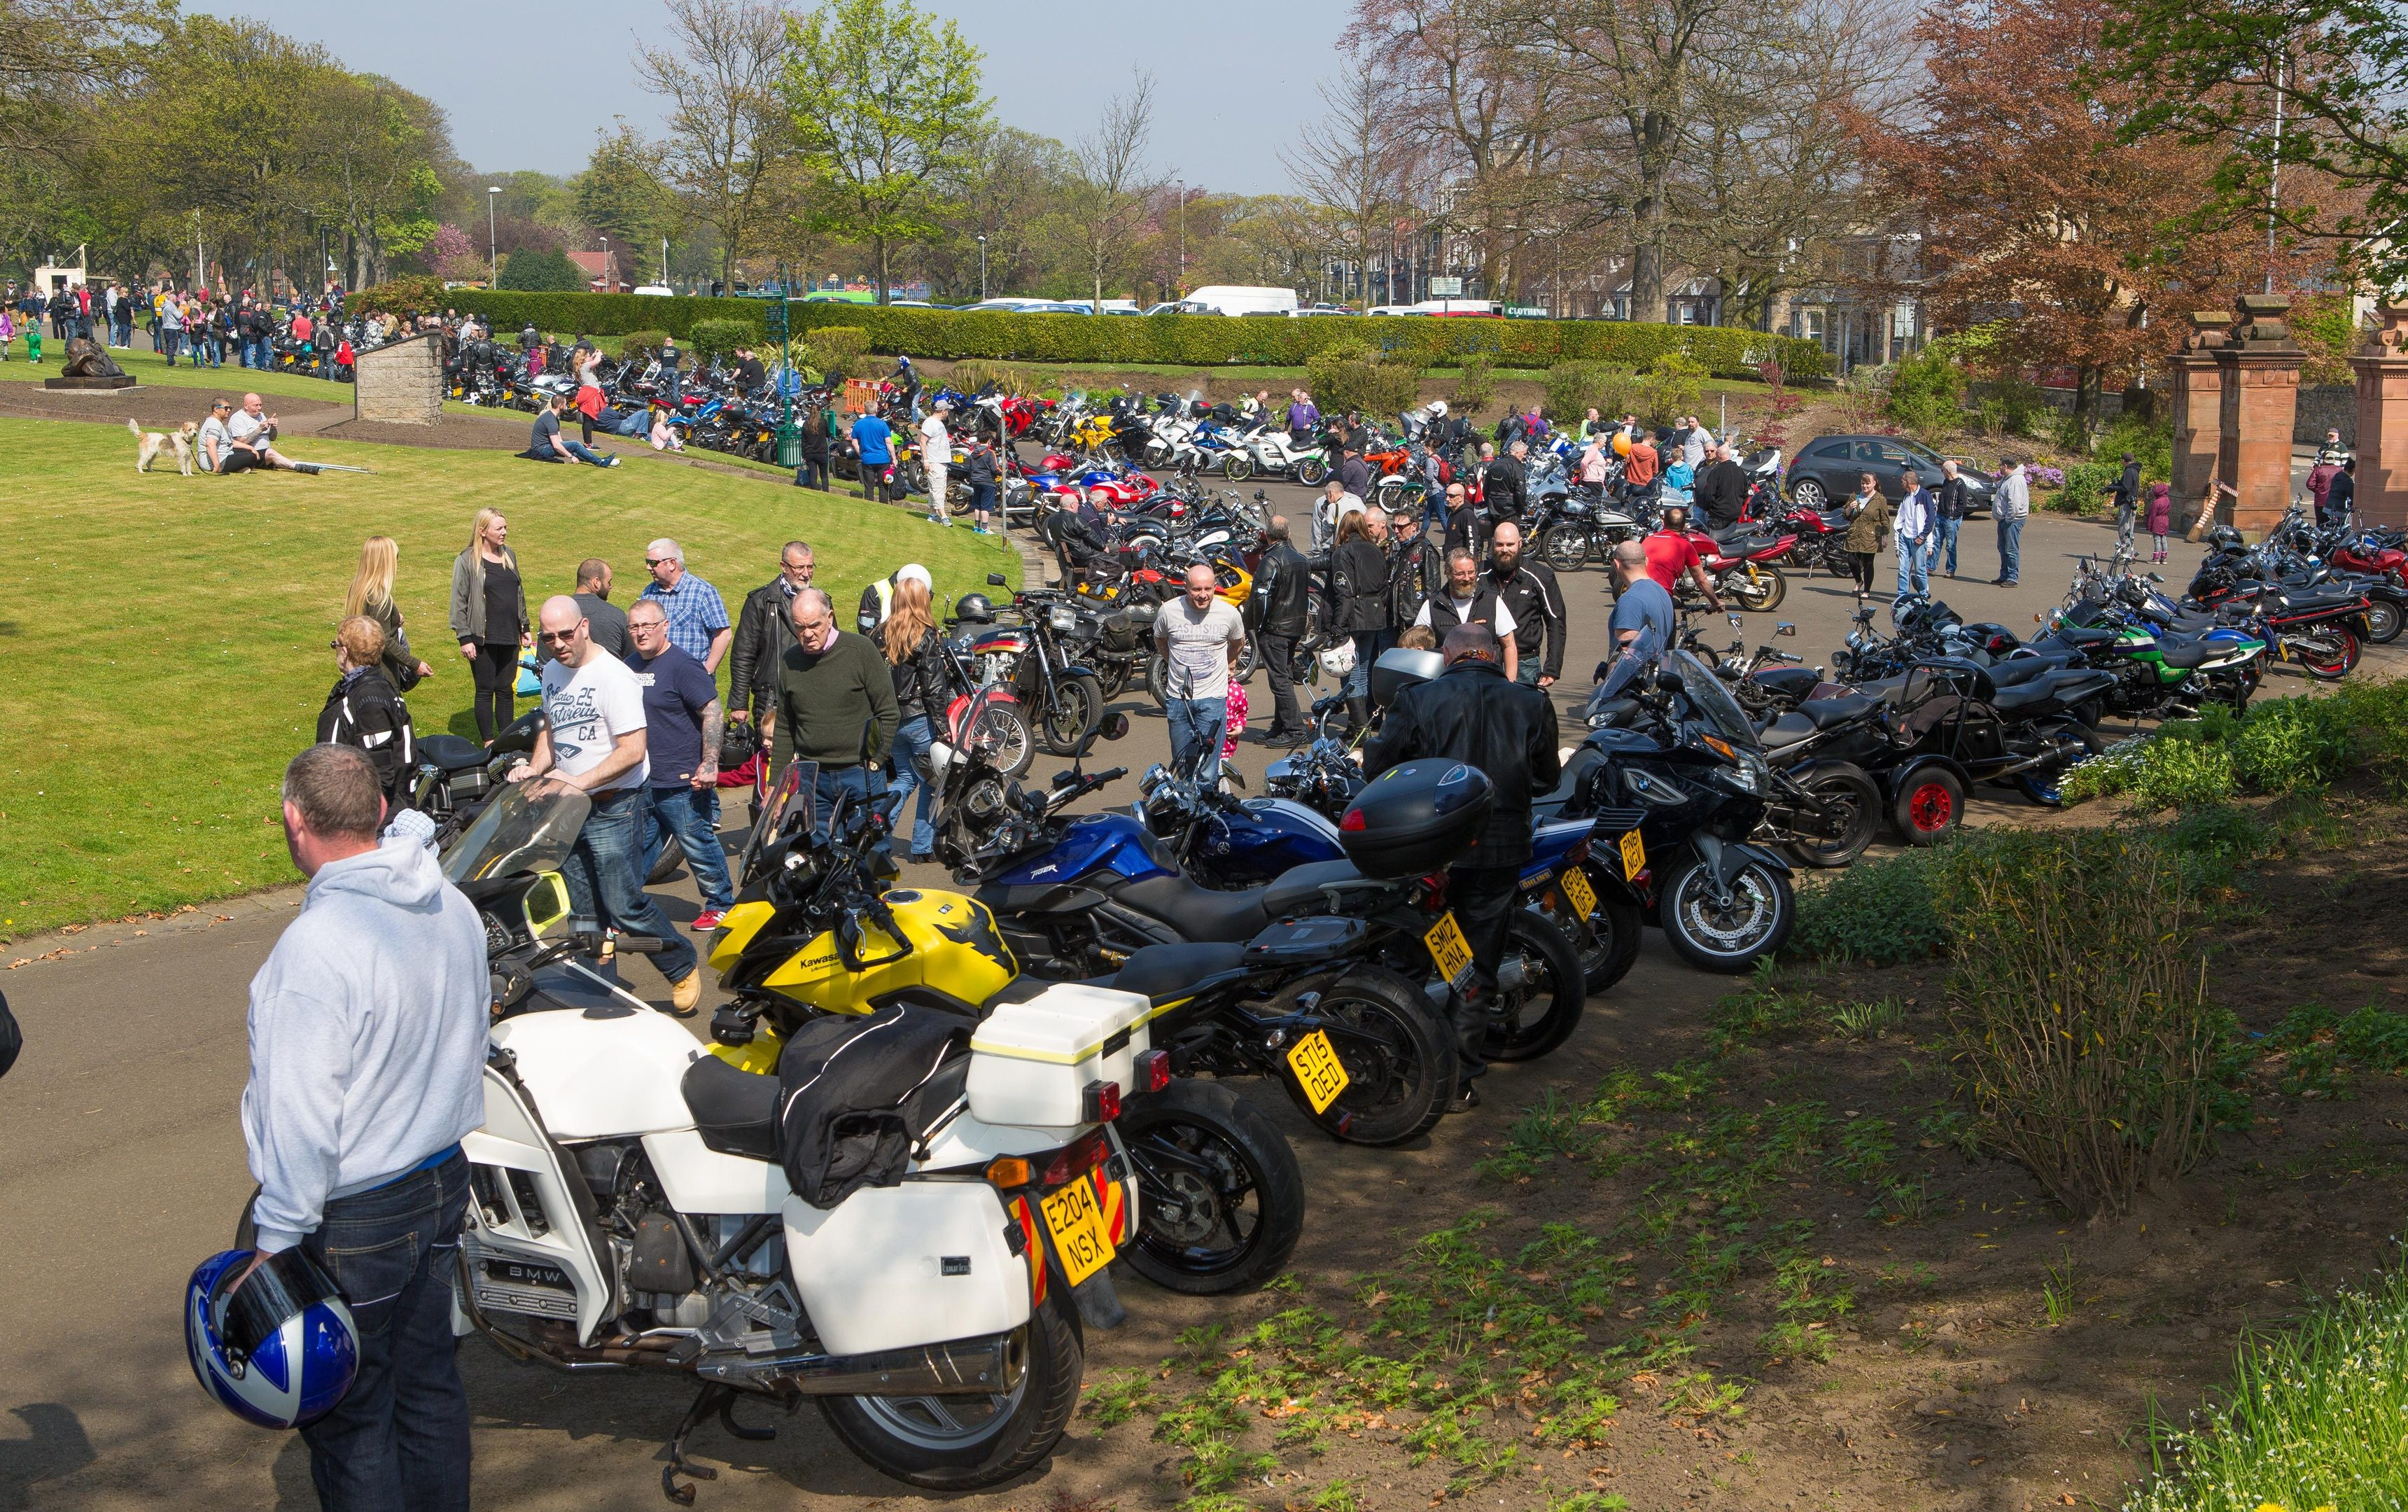 Kirkcaldy Motorbike Club holds in annual show at Beveridge Park.